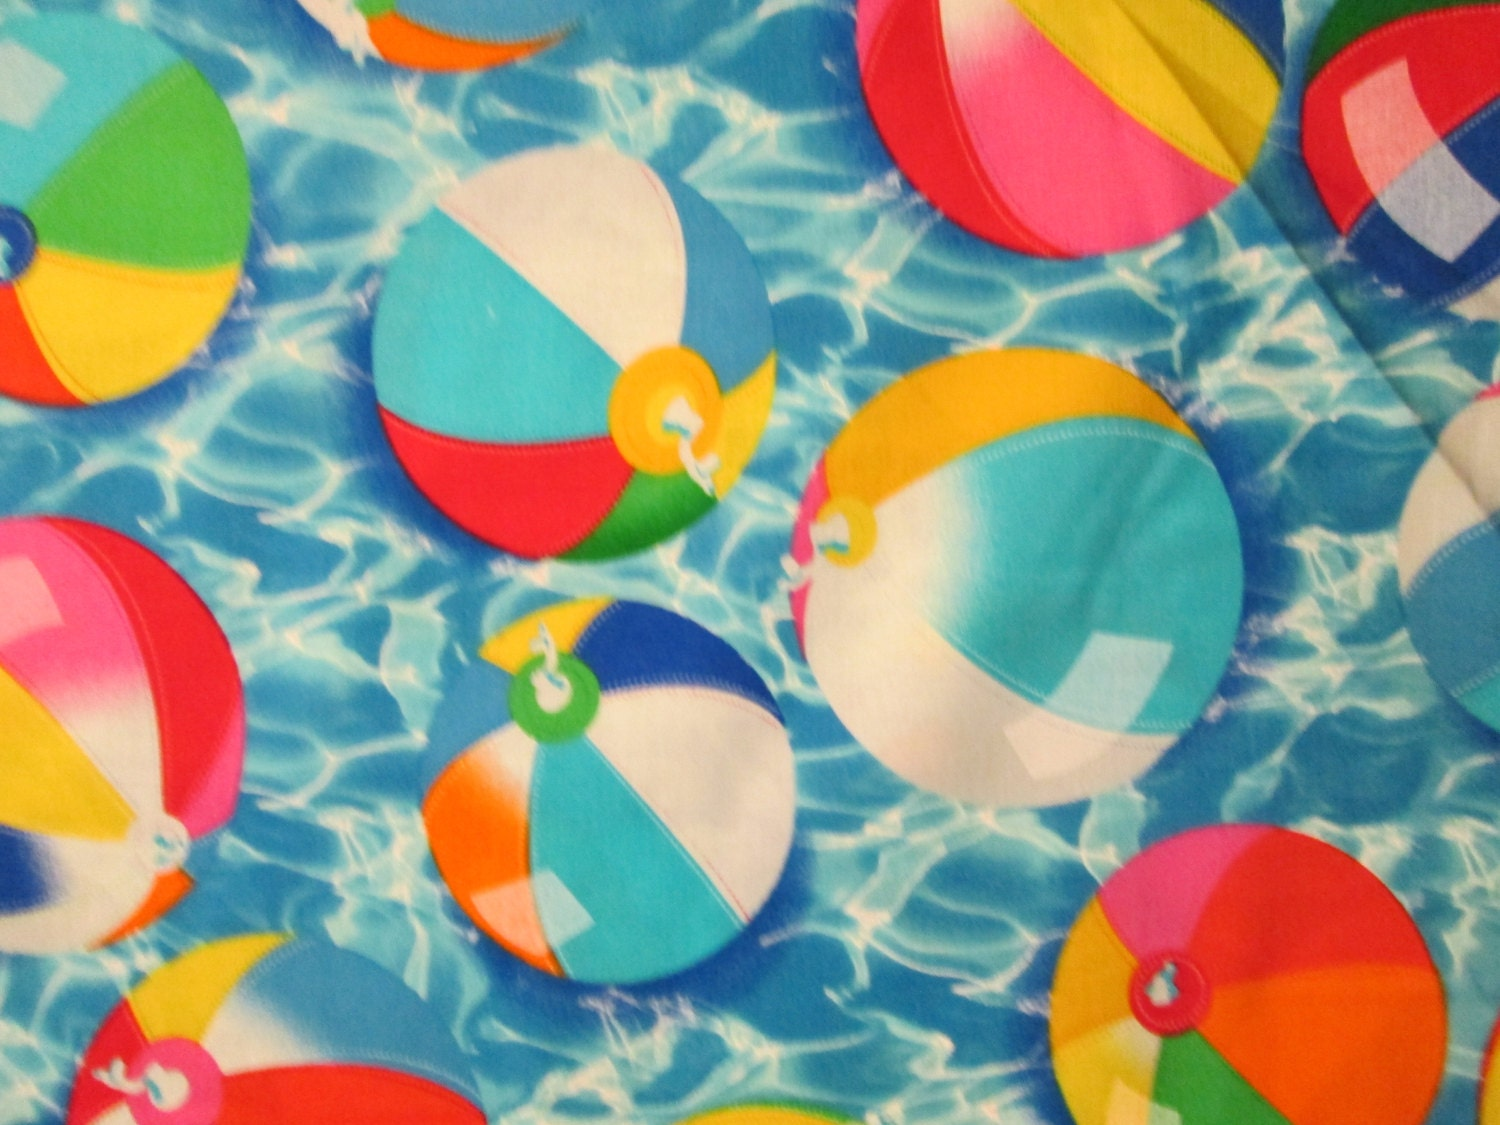 Fabrication Balle Beach Ball Cotton Fabric Fat